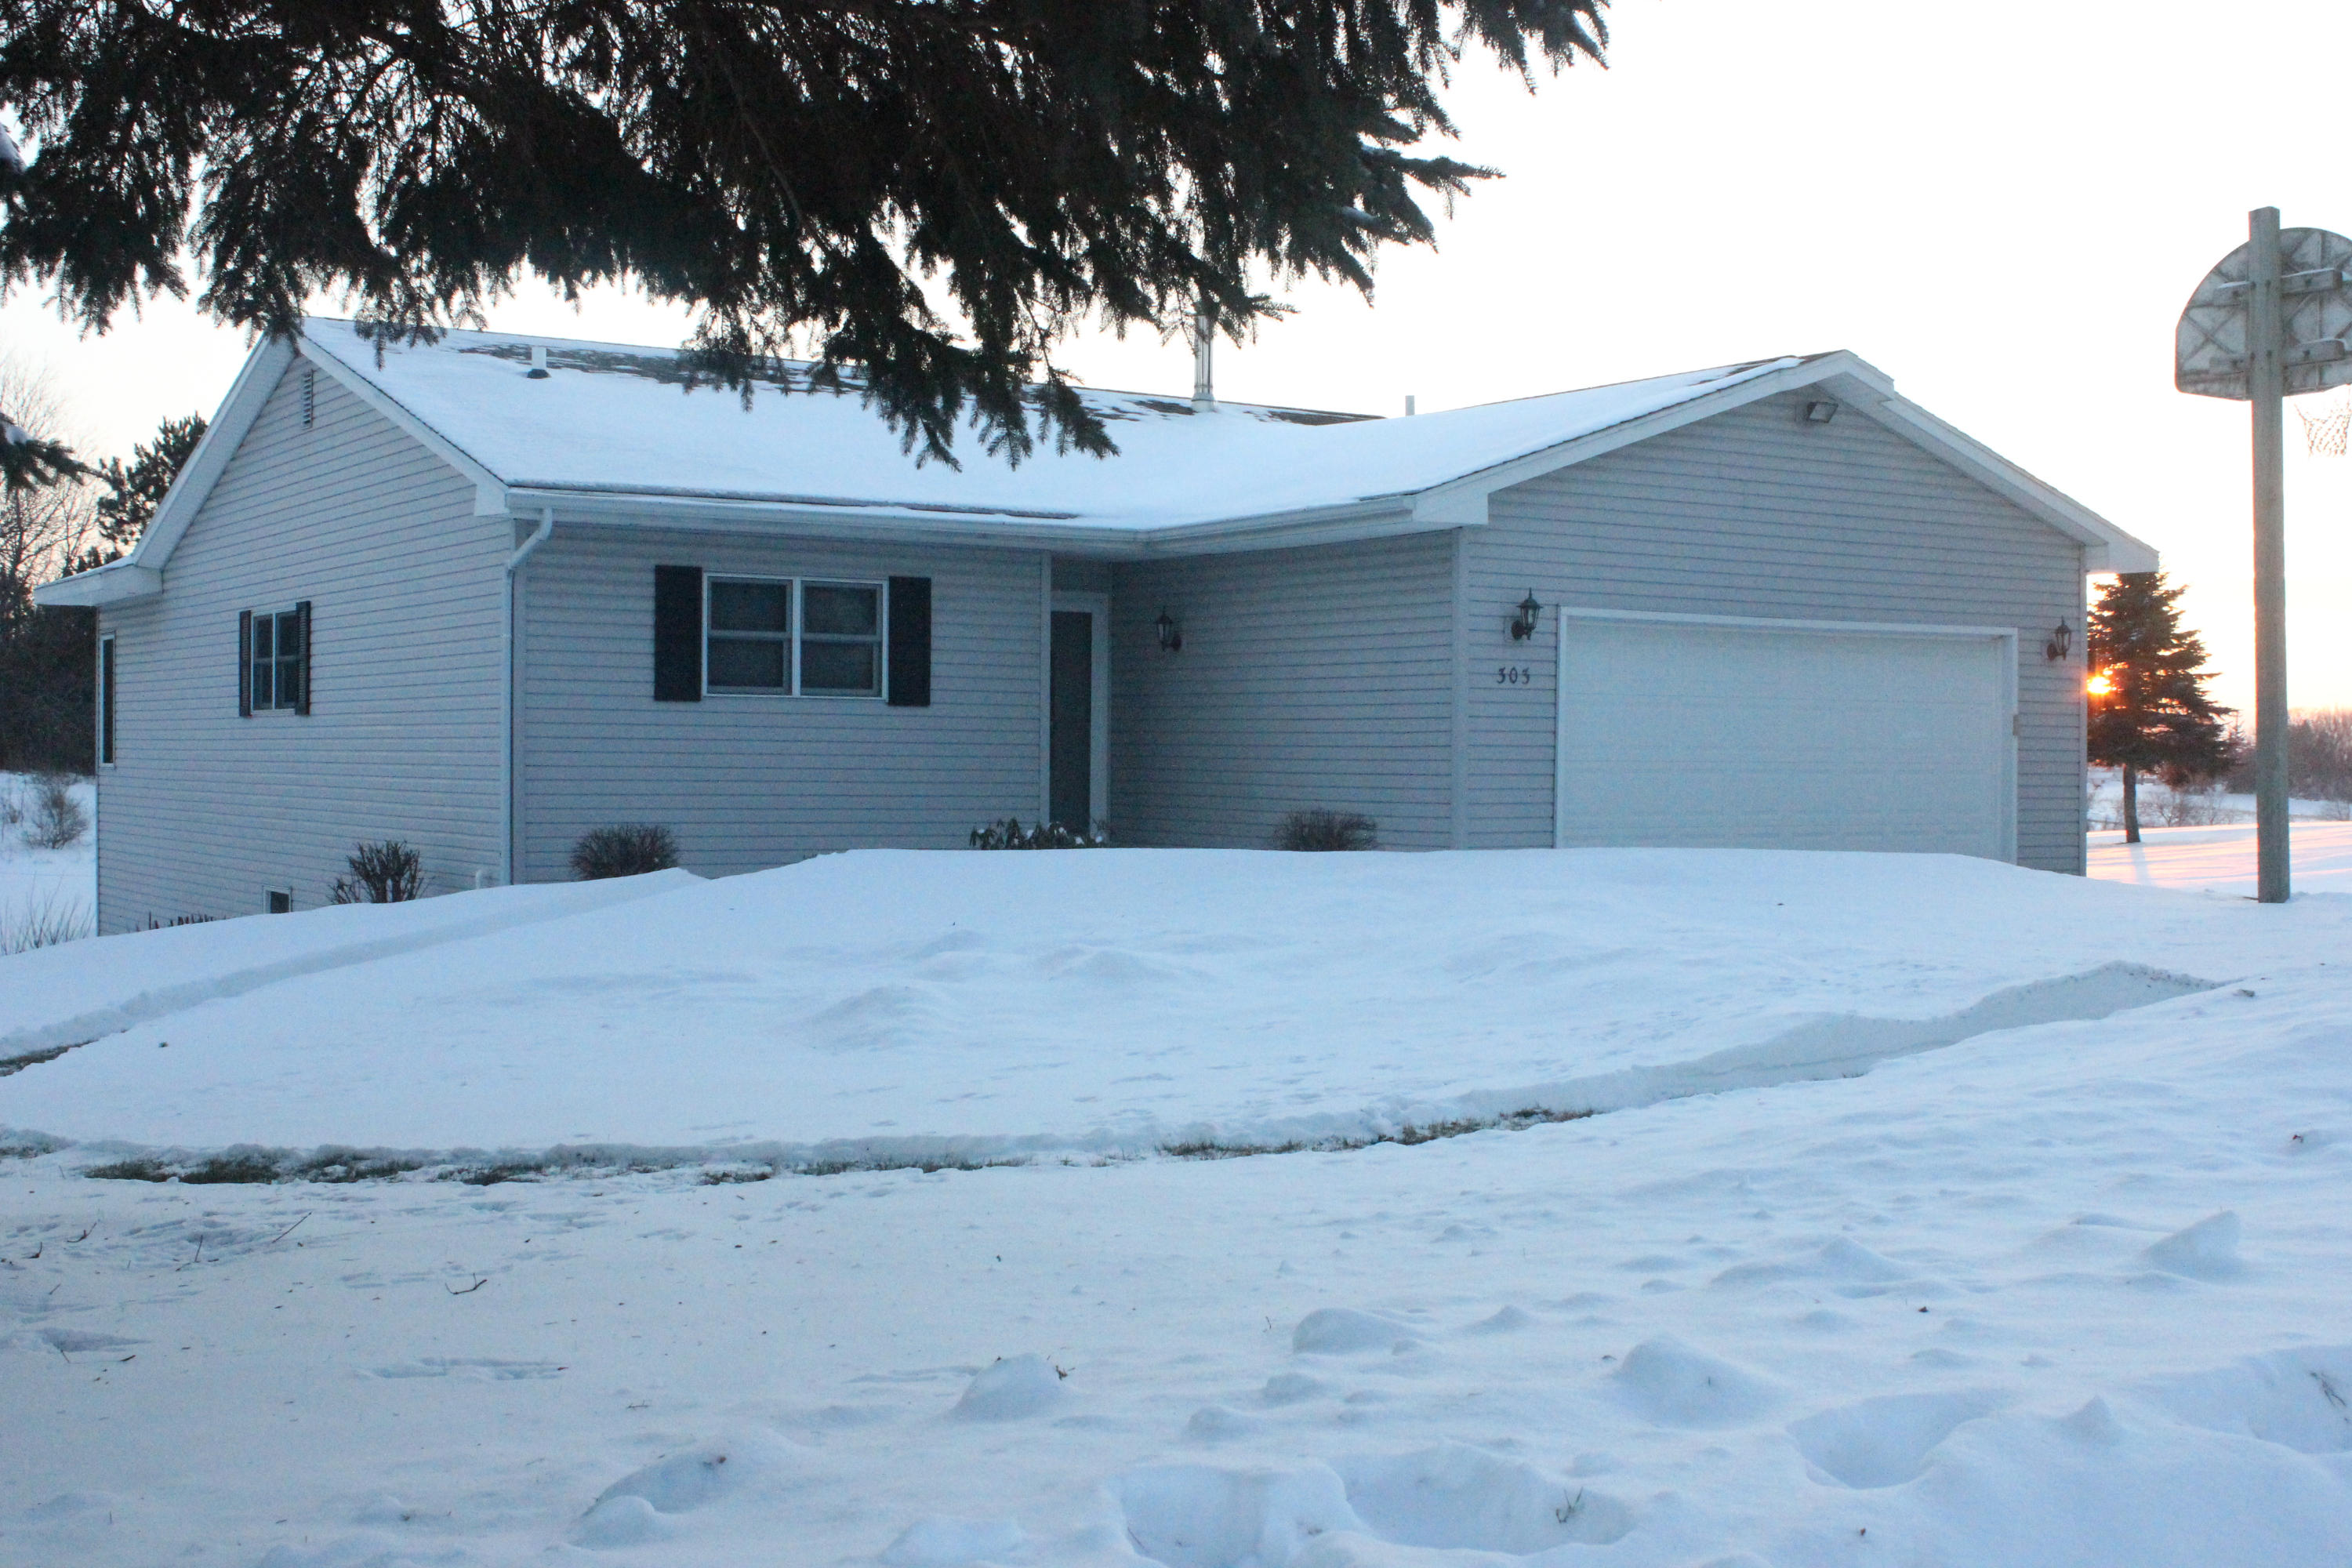 303 Ulland, Westby, WI 54667